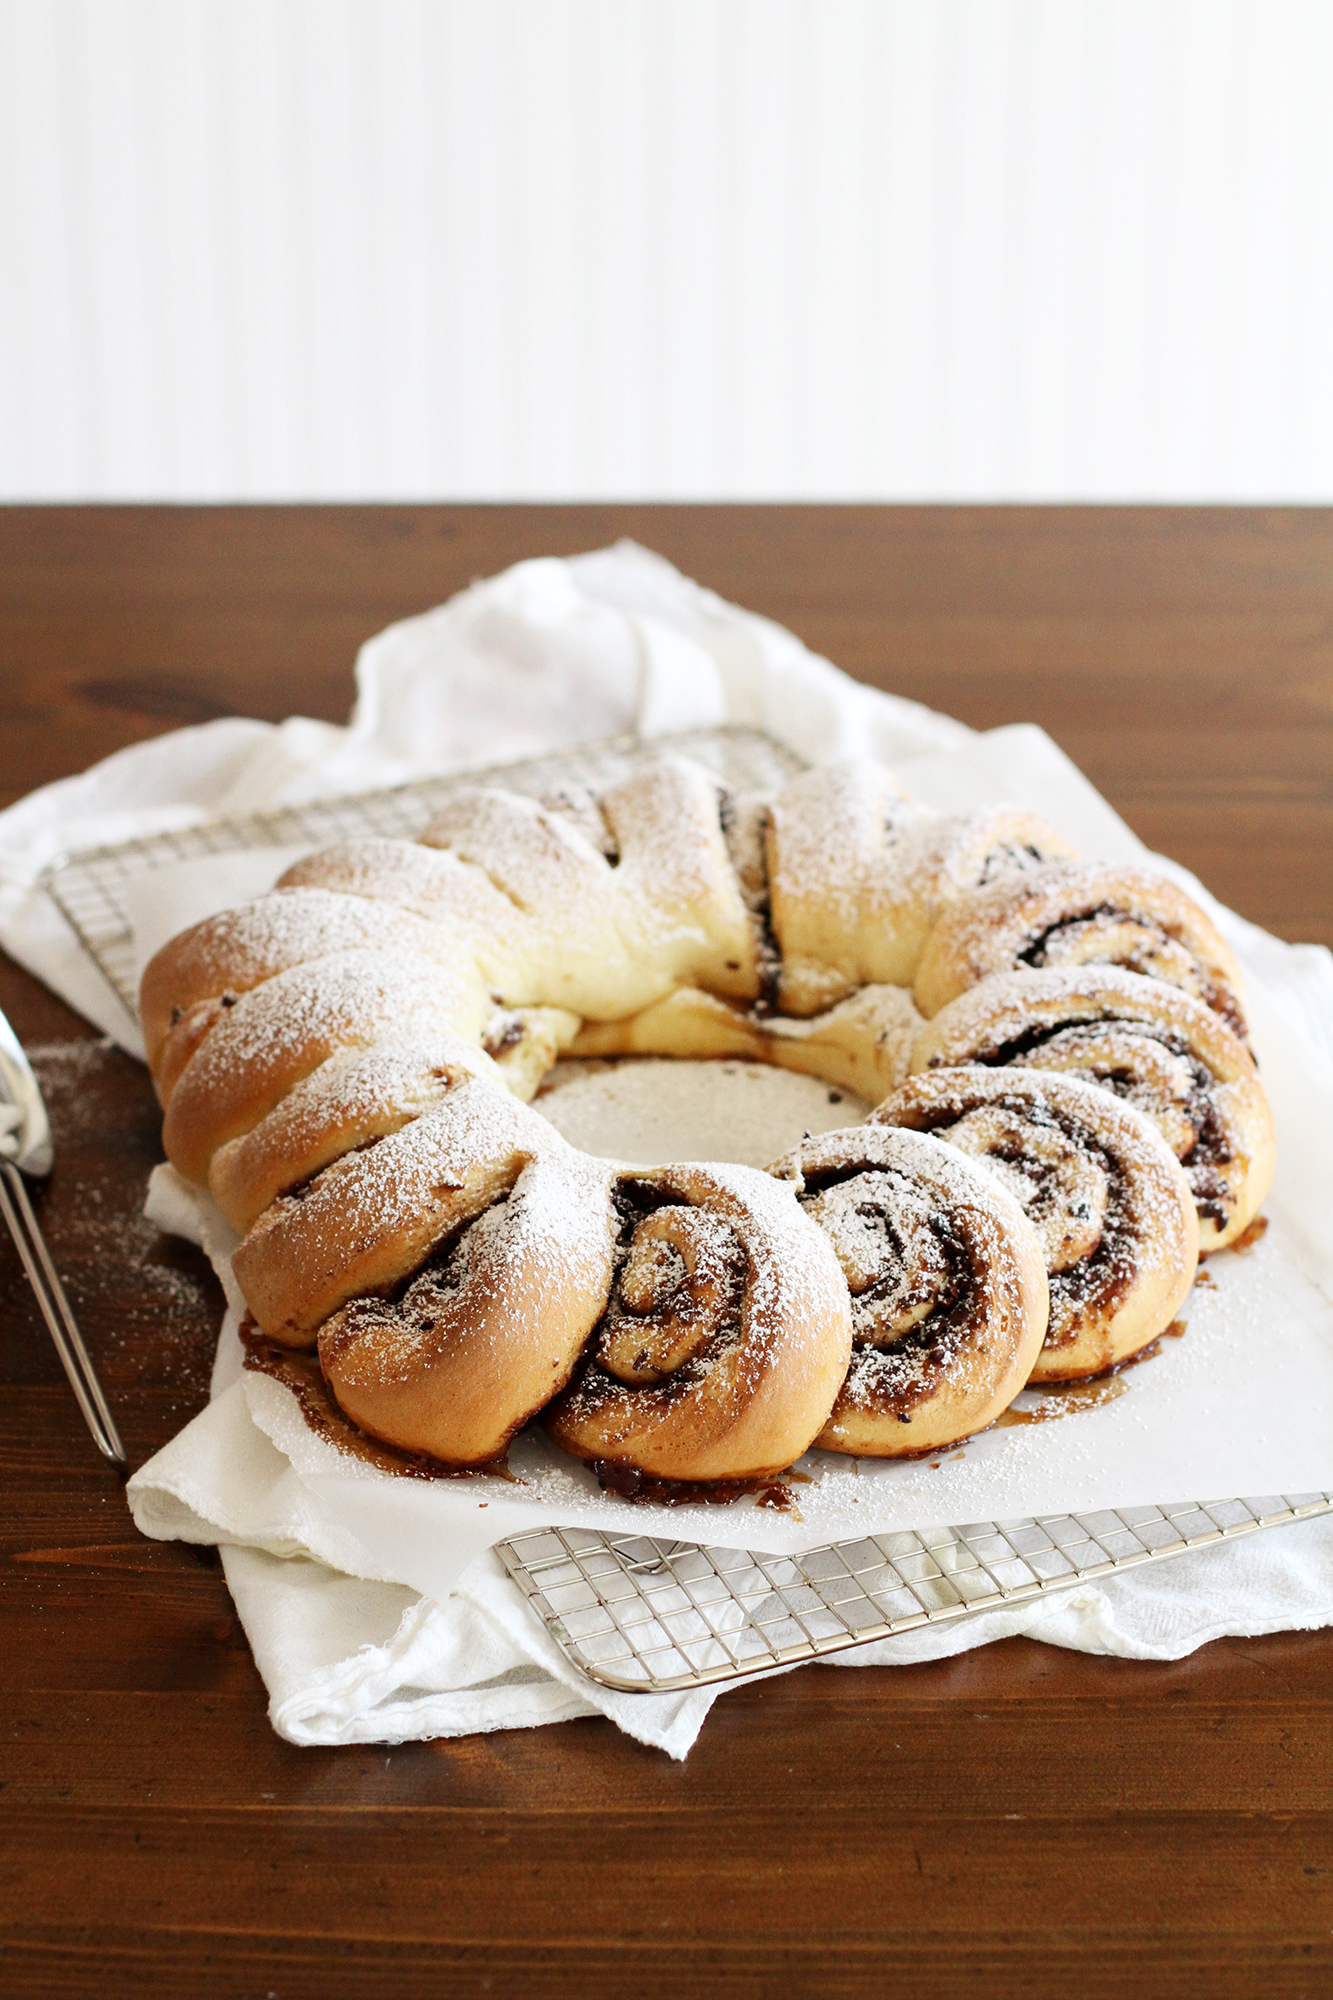 Chocolate Cinnamon Roll Wreath | girlversusdough.com @girlversusdough